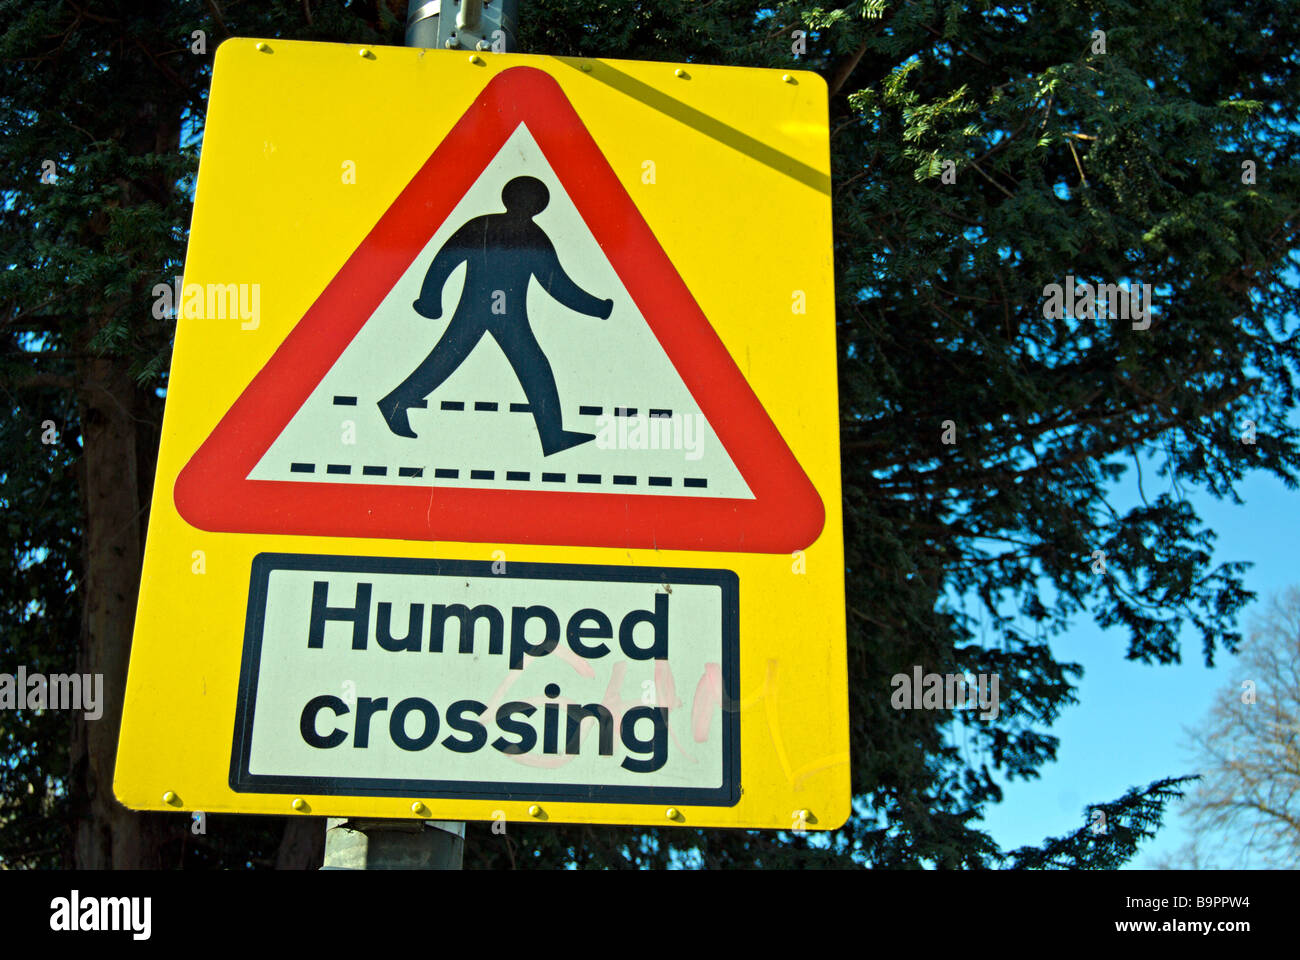 british humped crossing sign, indicating a raised section of road with a pedestrian crossing - Stock Image